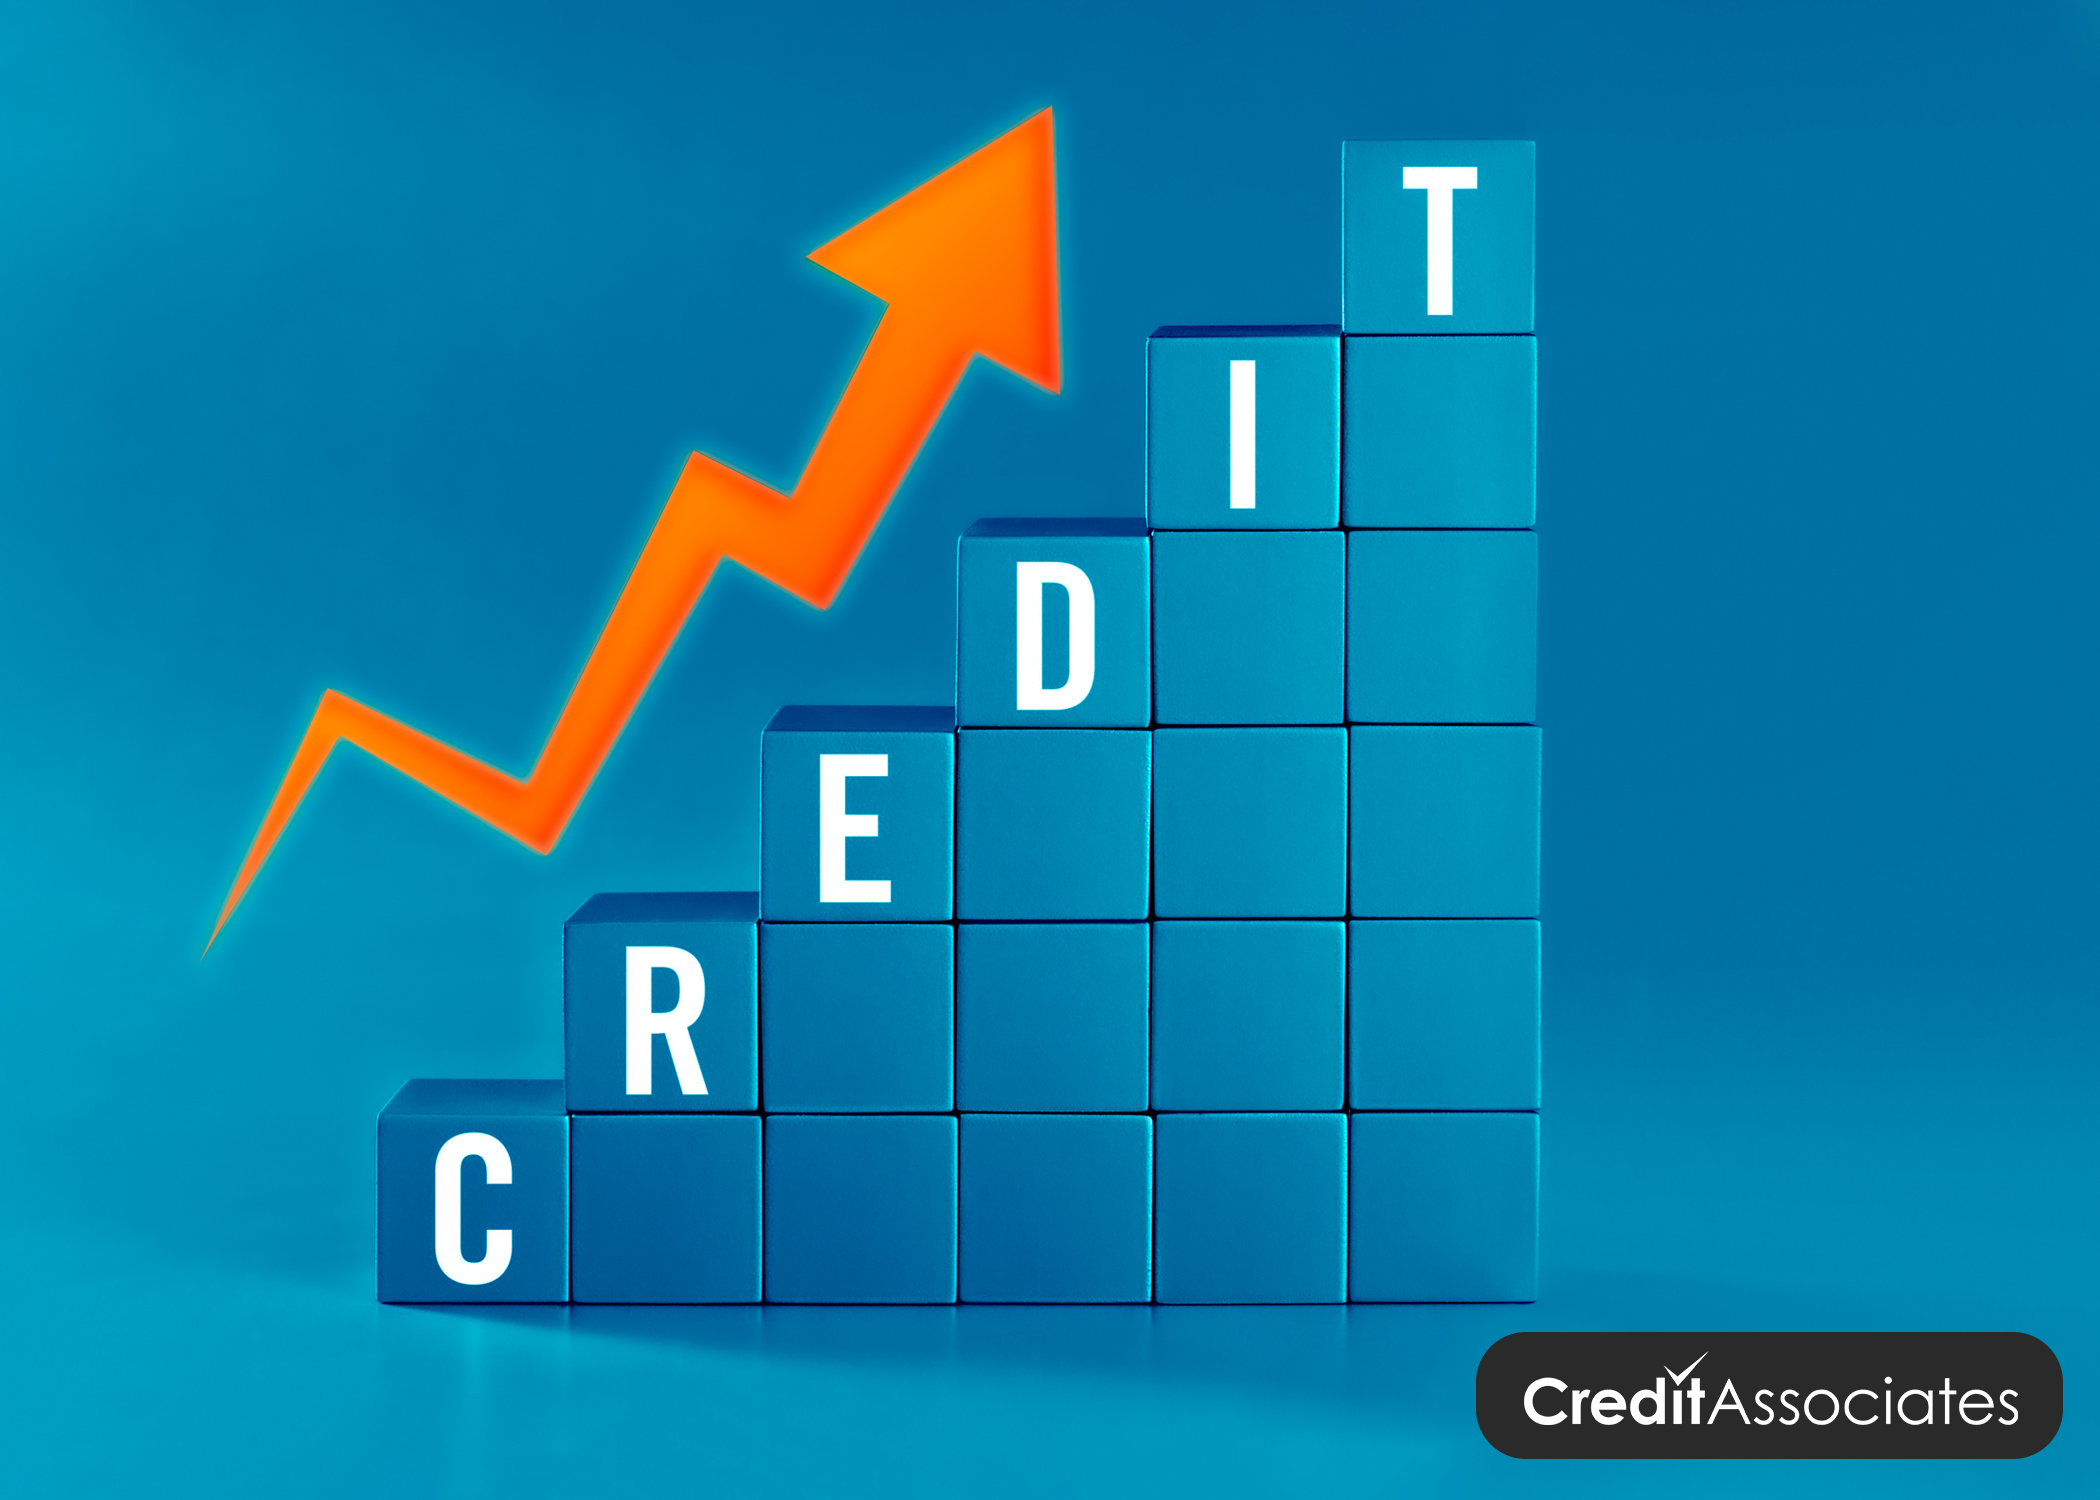 What are the Best Ways to Build Credit?